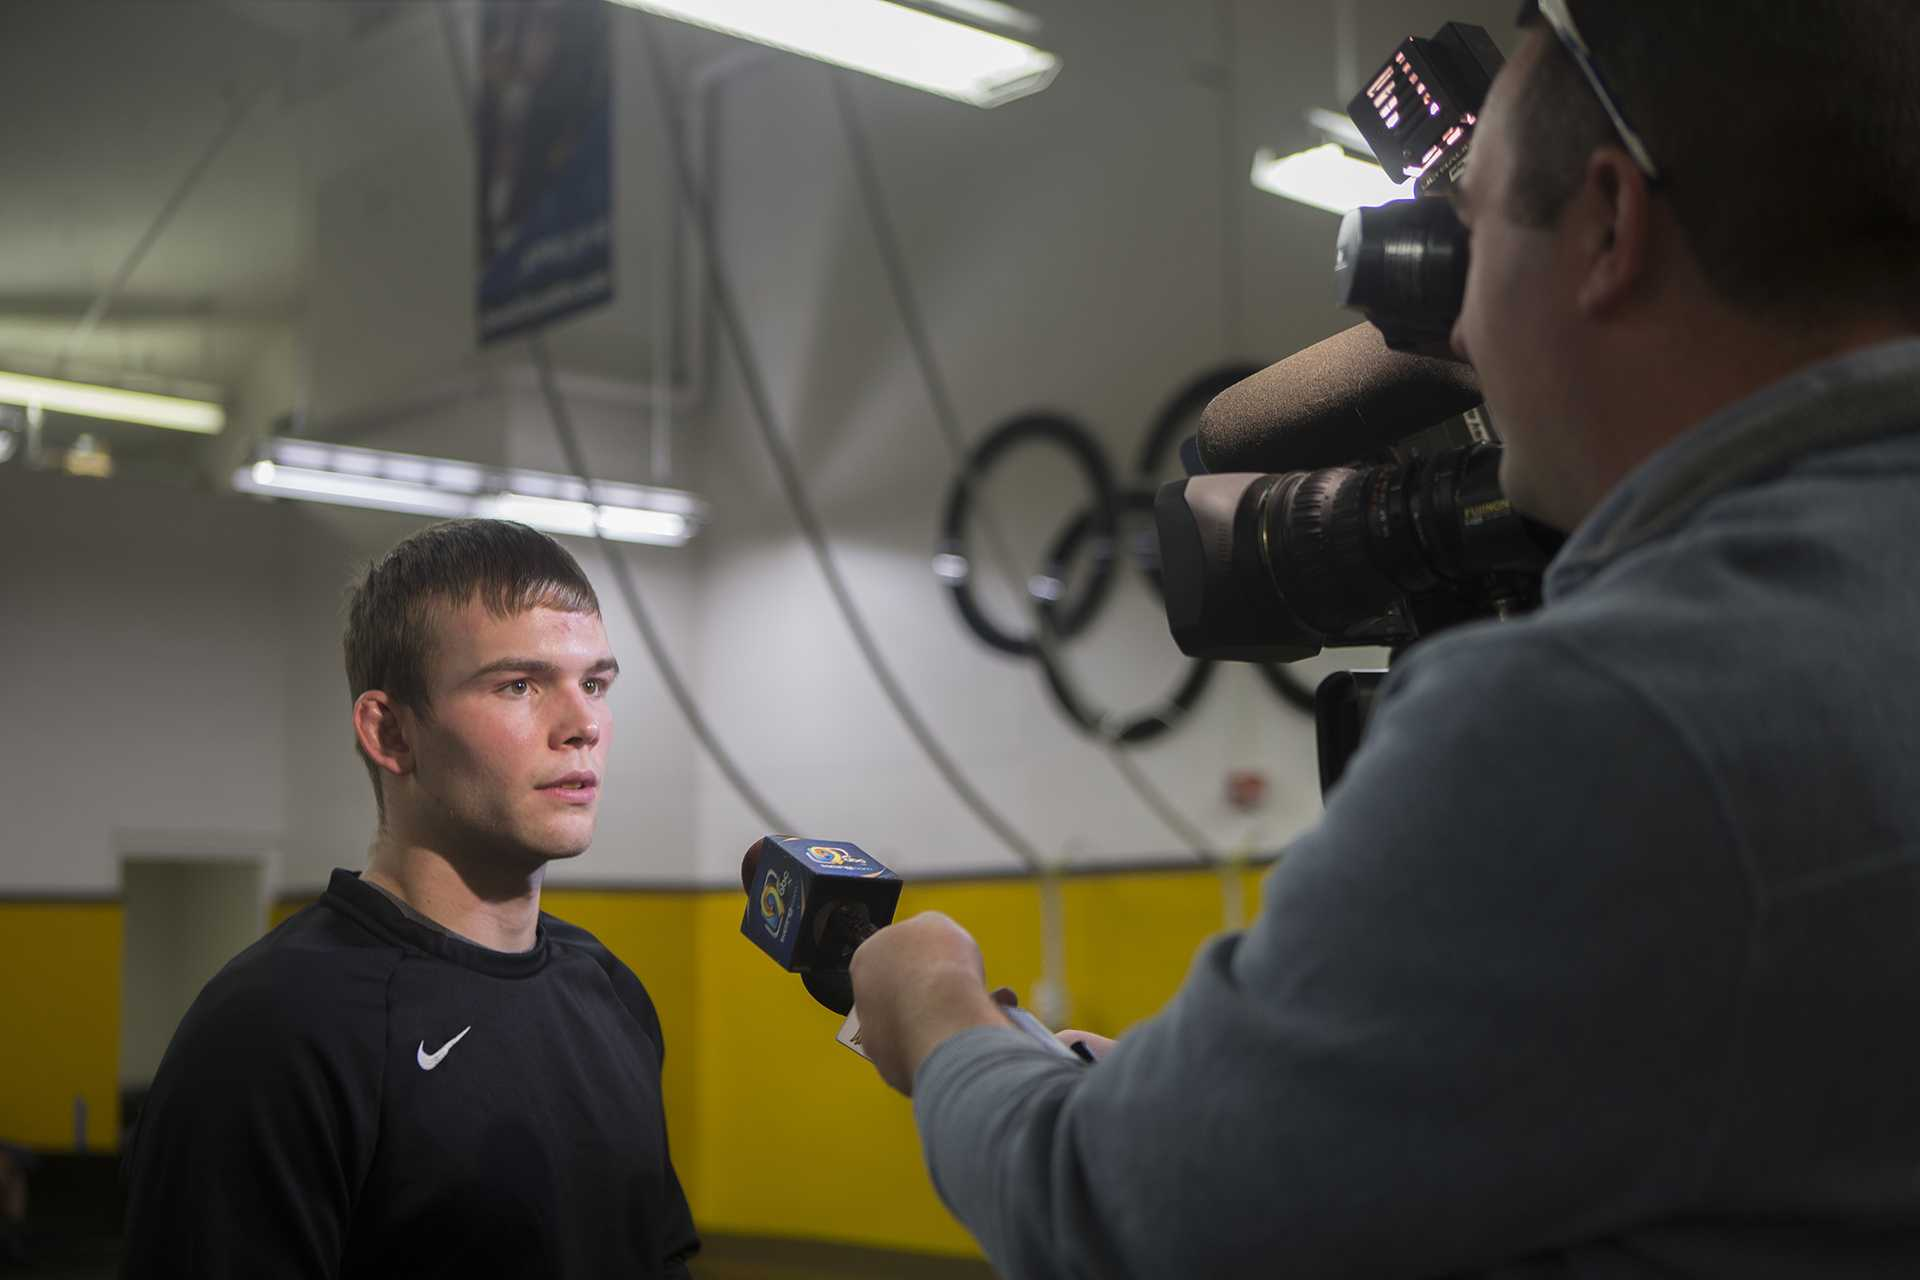 Iowa's Brandon Sorensen speaks to reporters during Wrestling Media Day at Carver-Hawkeye Arena on Wednesday, Nov. 8, 2017.   Hawkeye Wresling begins Iowa City duels on Friday, Nov. 17 against Iowa Central Community College. (Lily Smith/The Daily Iowan)